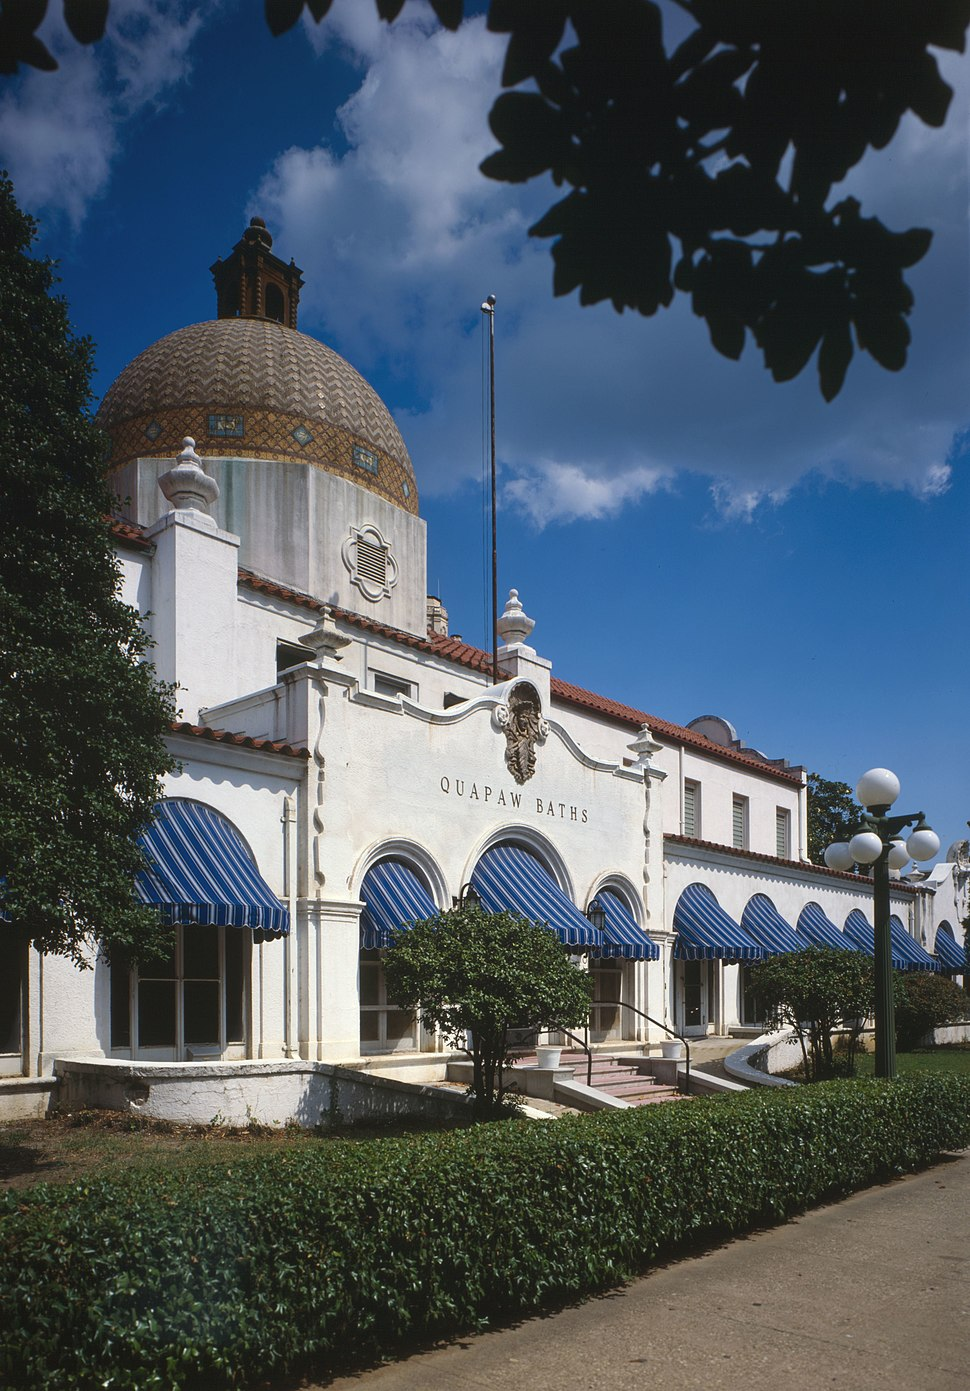 Quapaw Baths HABS 1984